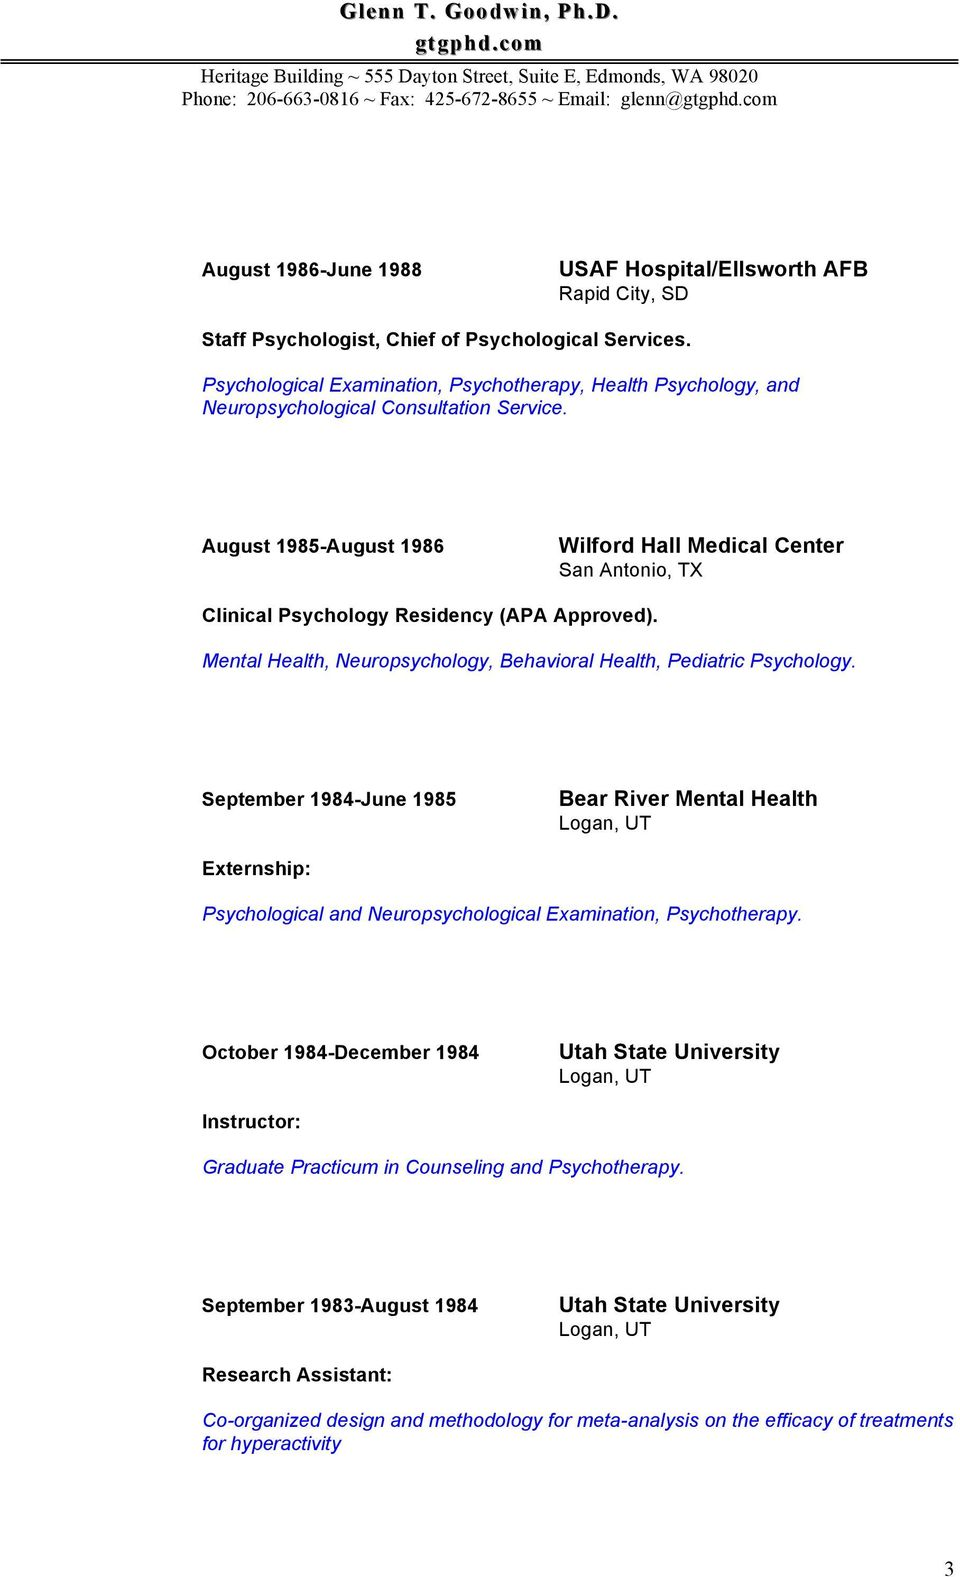 August 1985-August 1986 Wilford Hall Medical Center San Antonio, TX Clinical Psychology Residency (APA Approved). Mental Health, Neuropsychology, Behavioral Health, Pediatric Psychology.